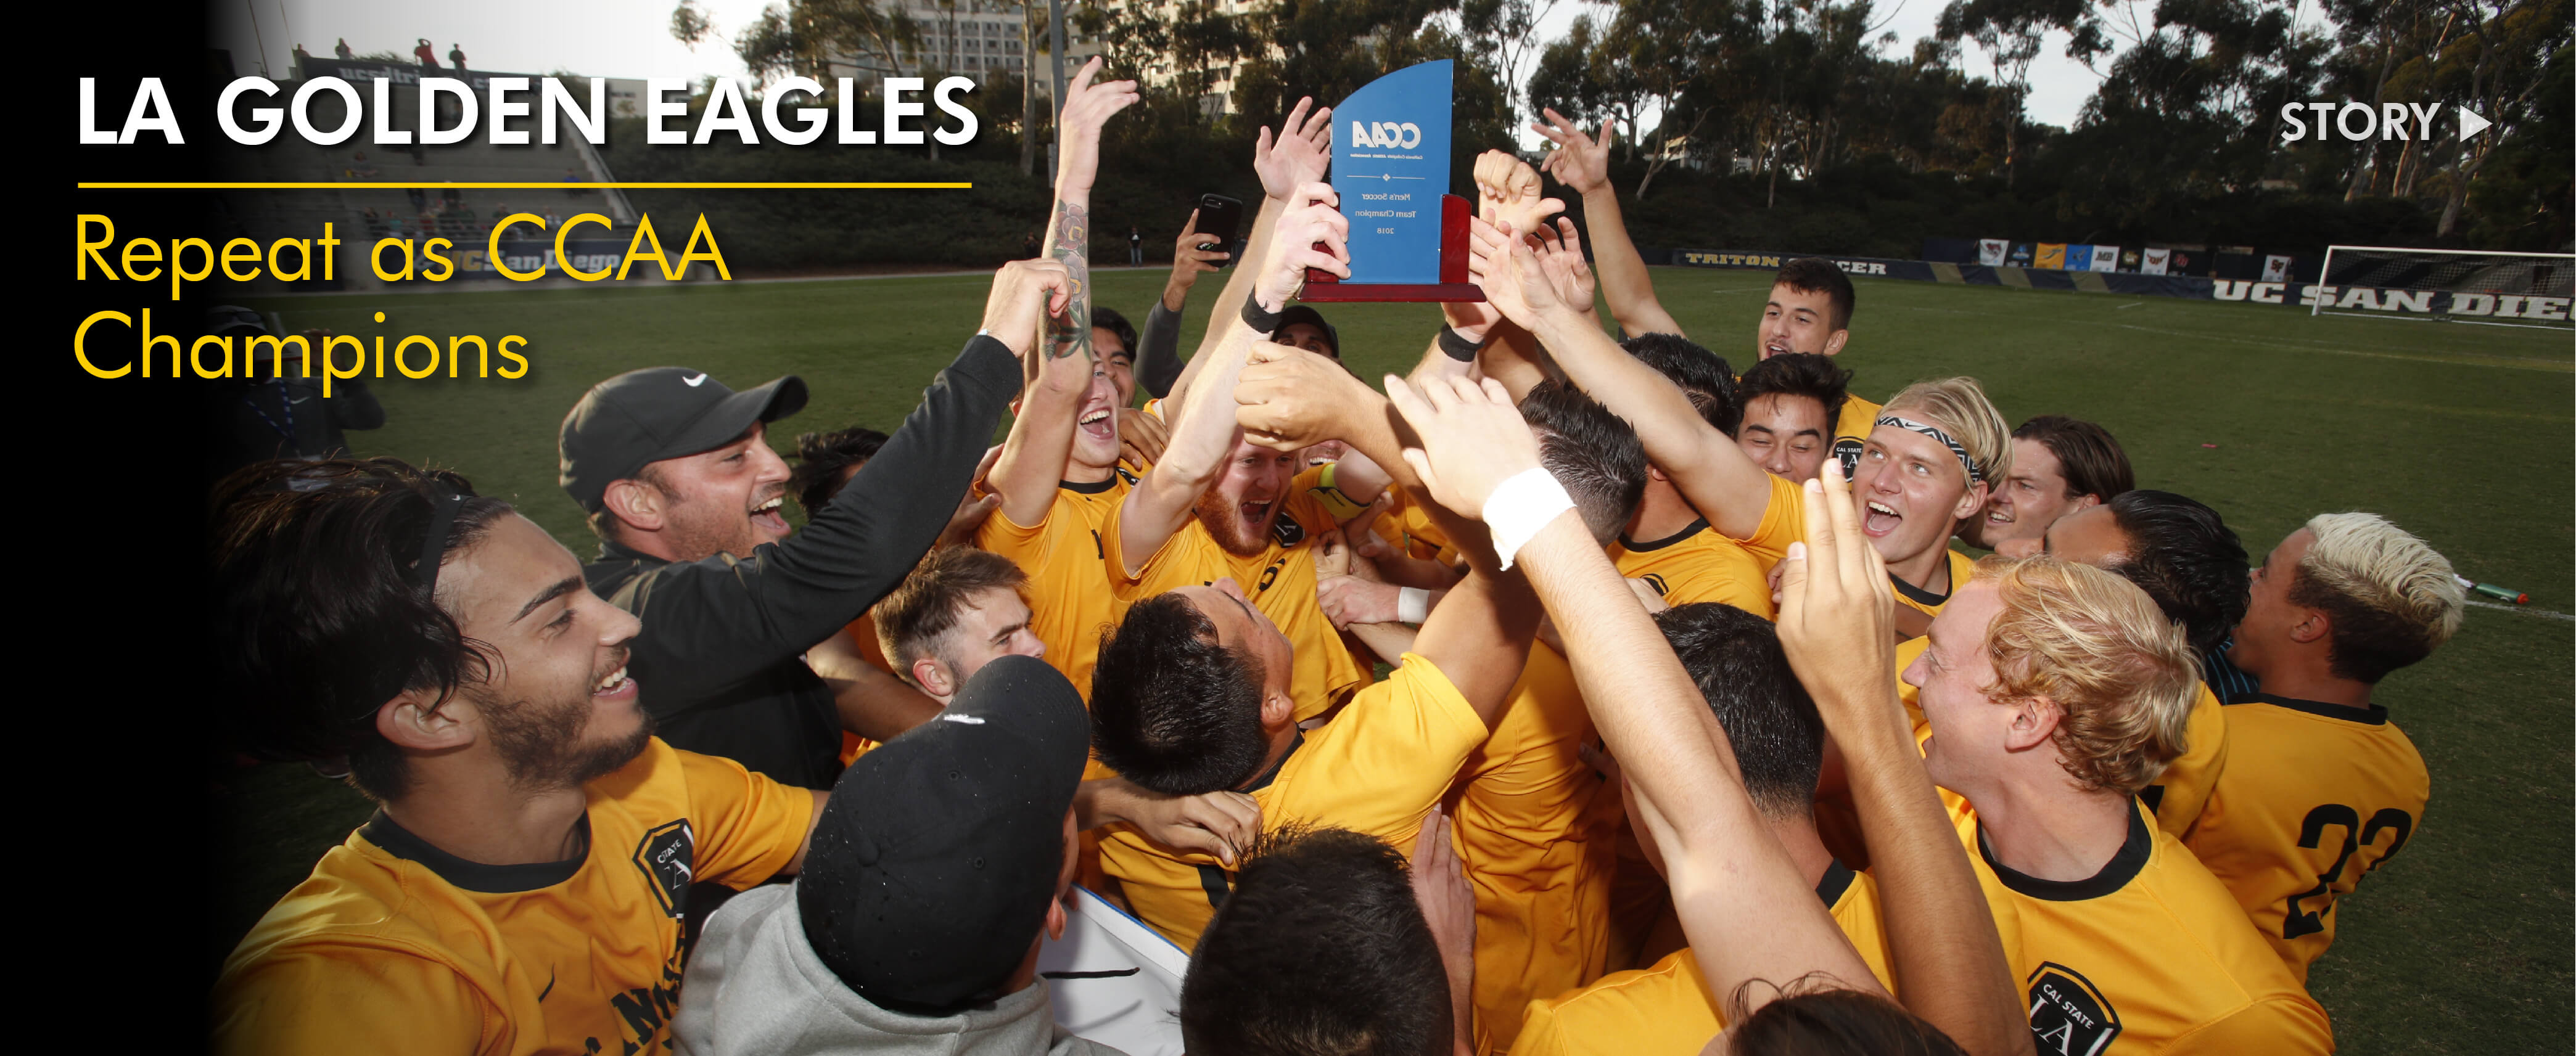 LA Golden Eagles Repeat as CCAA Champions. Click to read story